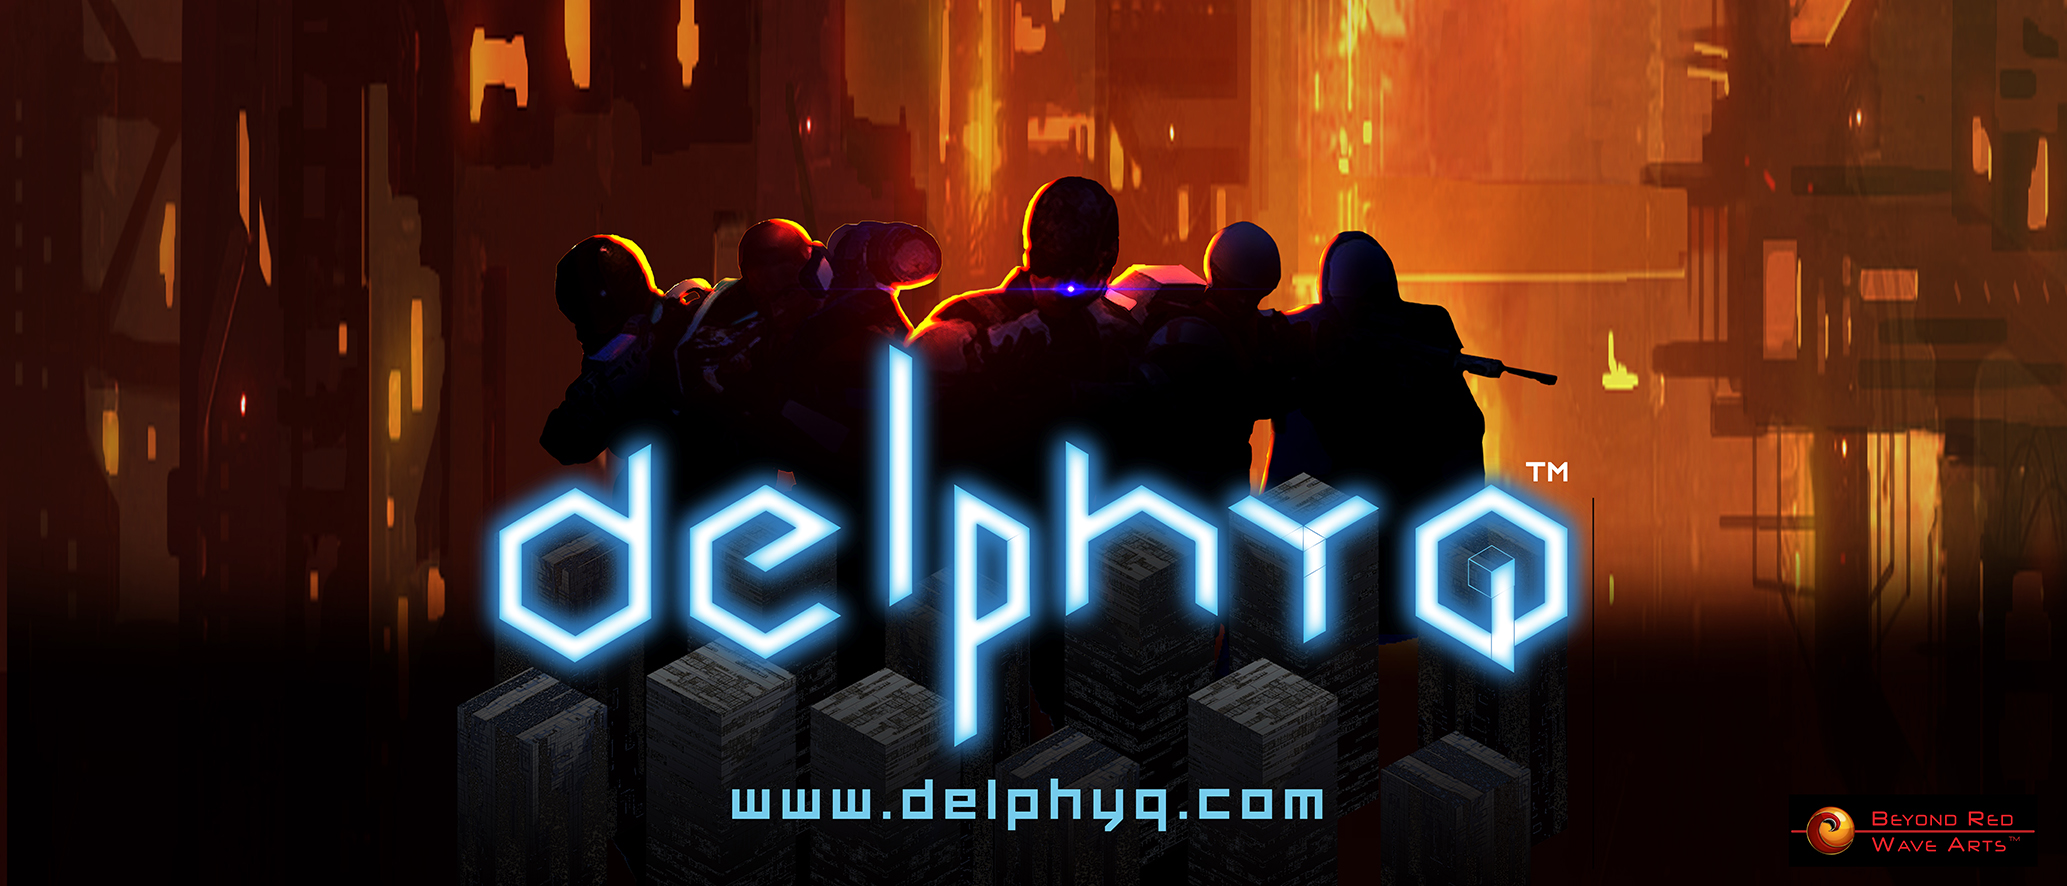 Delphyq-Banner-for-SplashIMG